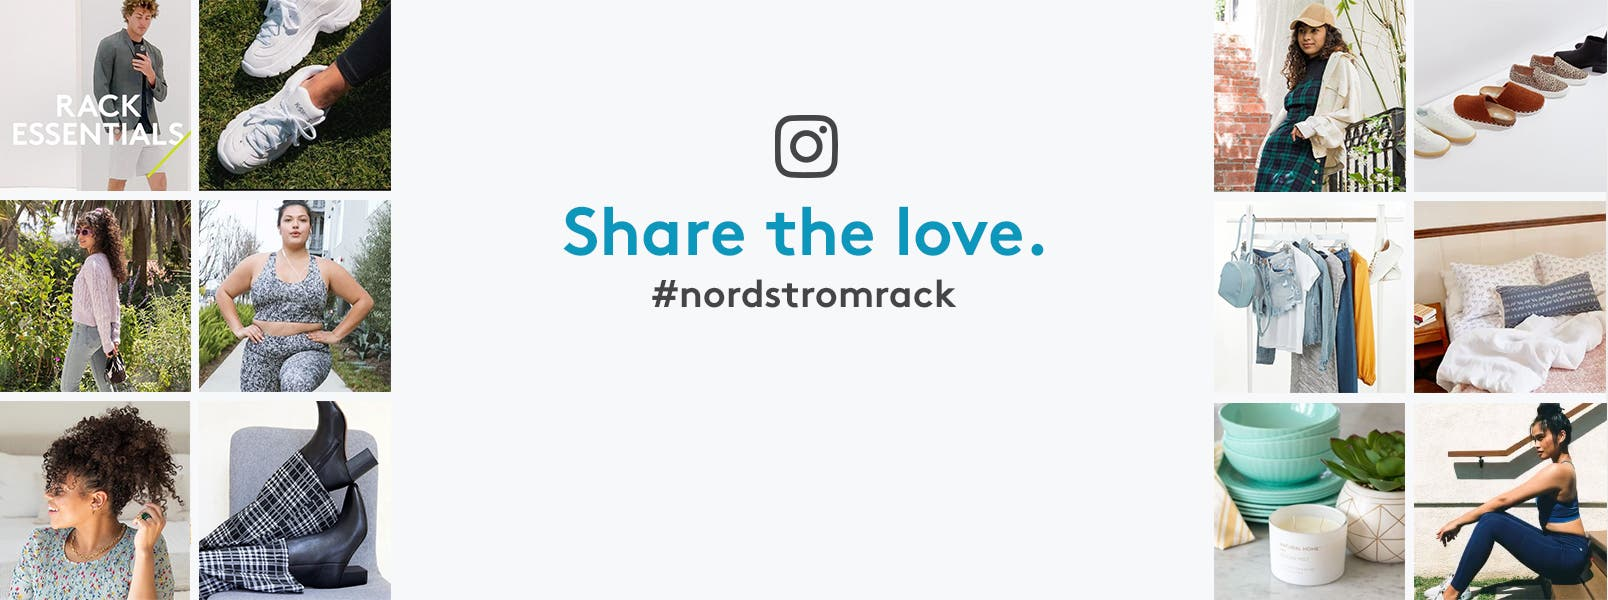 Share the love on Instagram. #nordstromrack. Images of IG logo, colorful handbags, sunglasses, flip flops, sun hat, sunscreen, women in sundress and activewear, tennis shoes, sandals, Nordstrom-Anniversary-Sale-is-coming banner, summer wardrobe, pastel dishes, candle and plant holder.